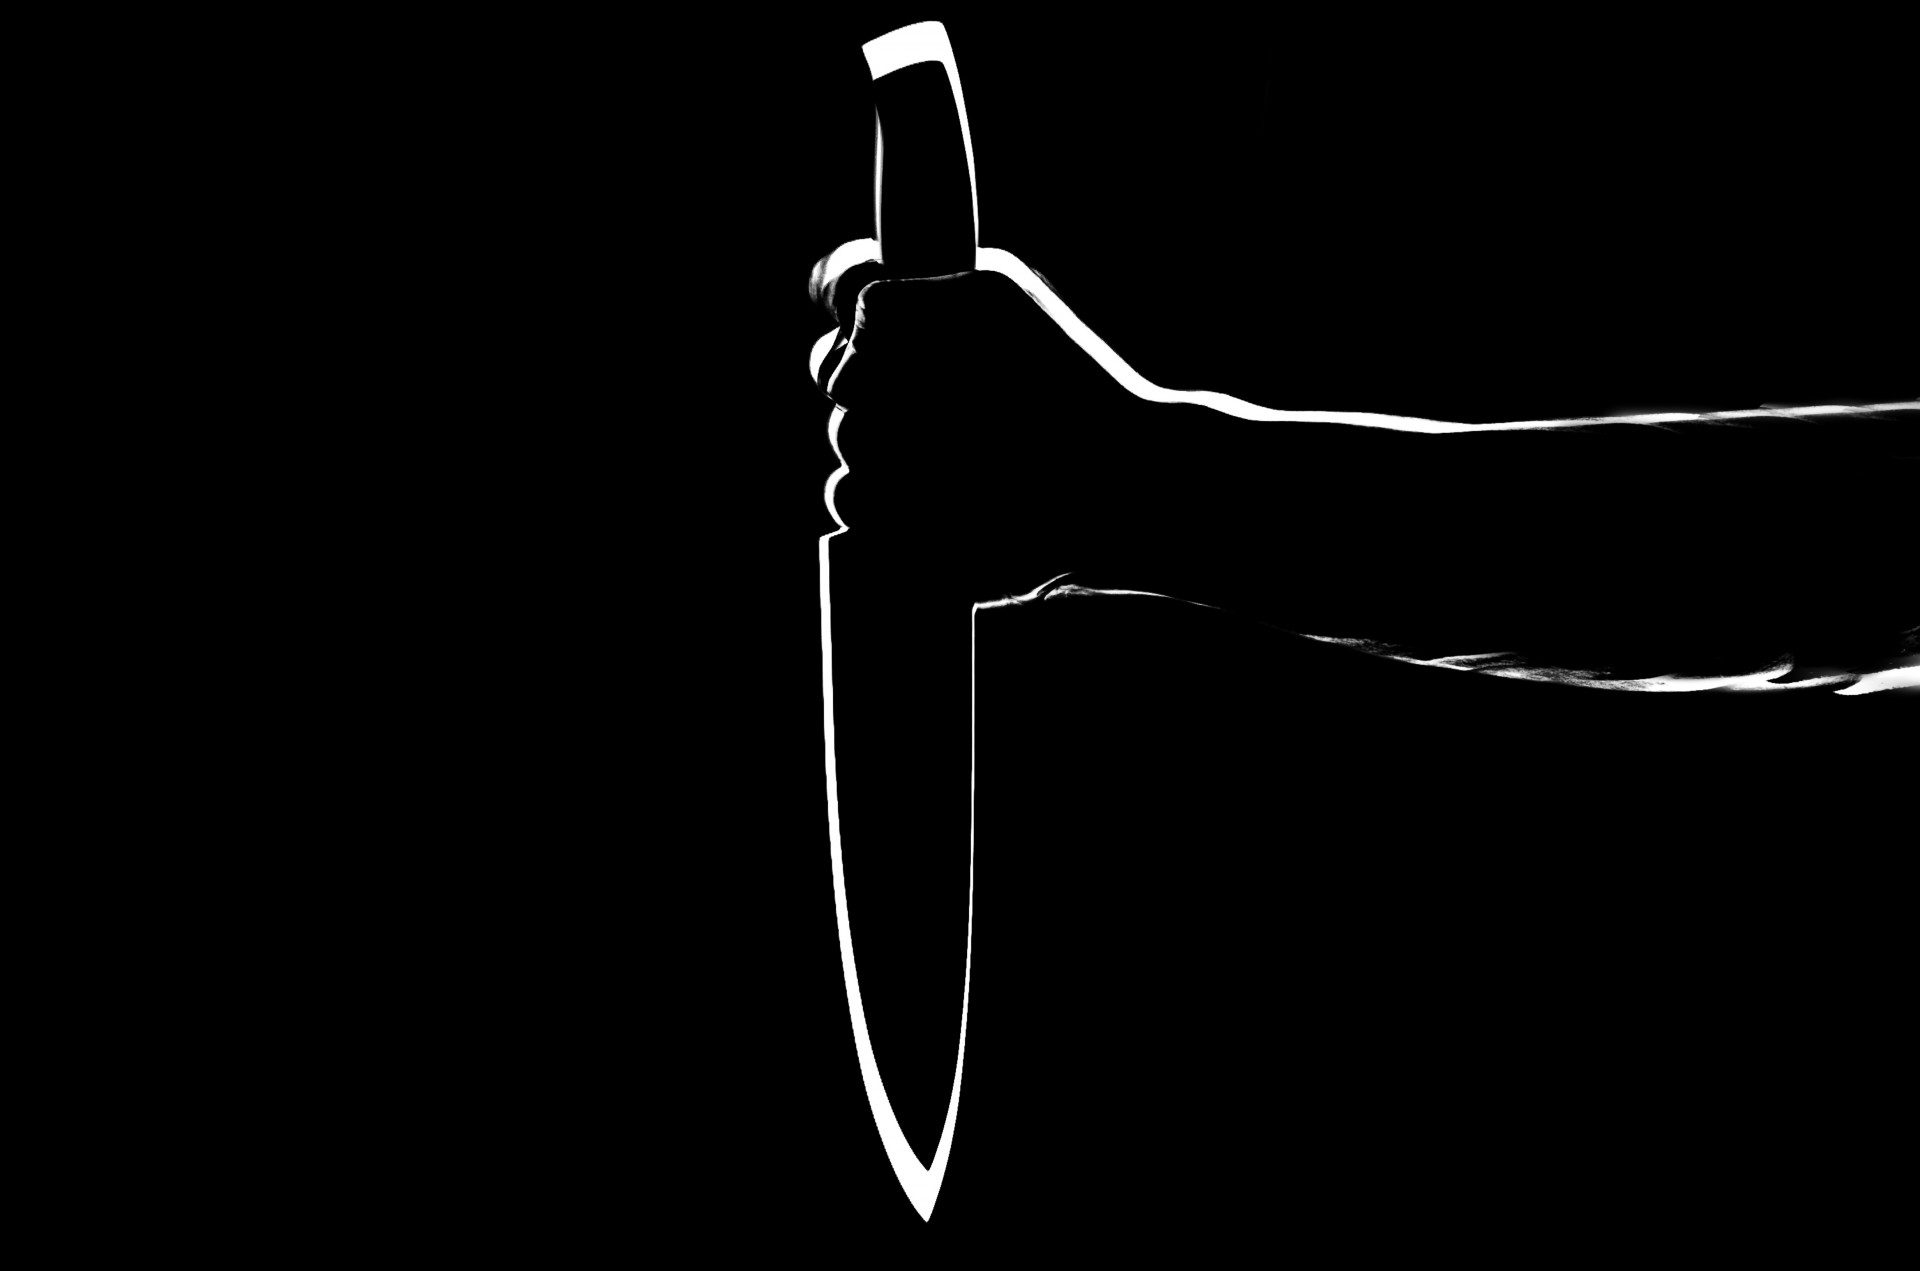 silhouette-of-hand-with-knife (1)